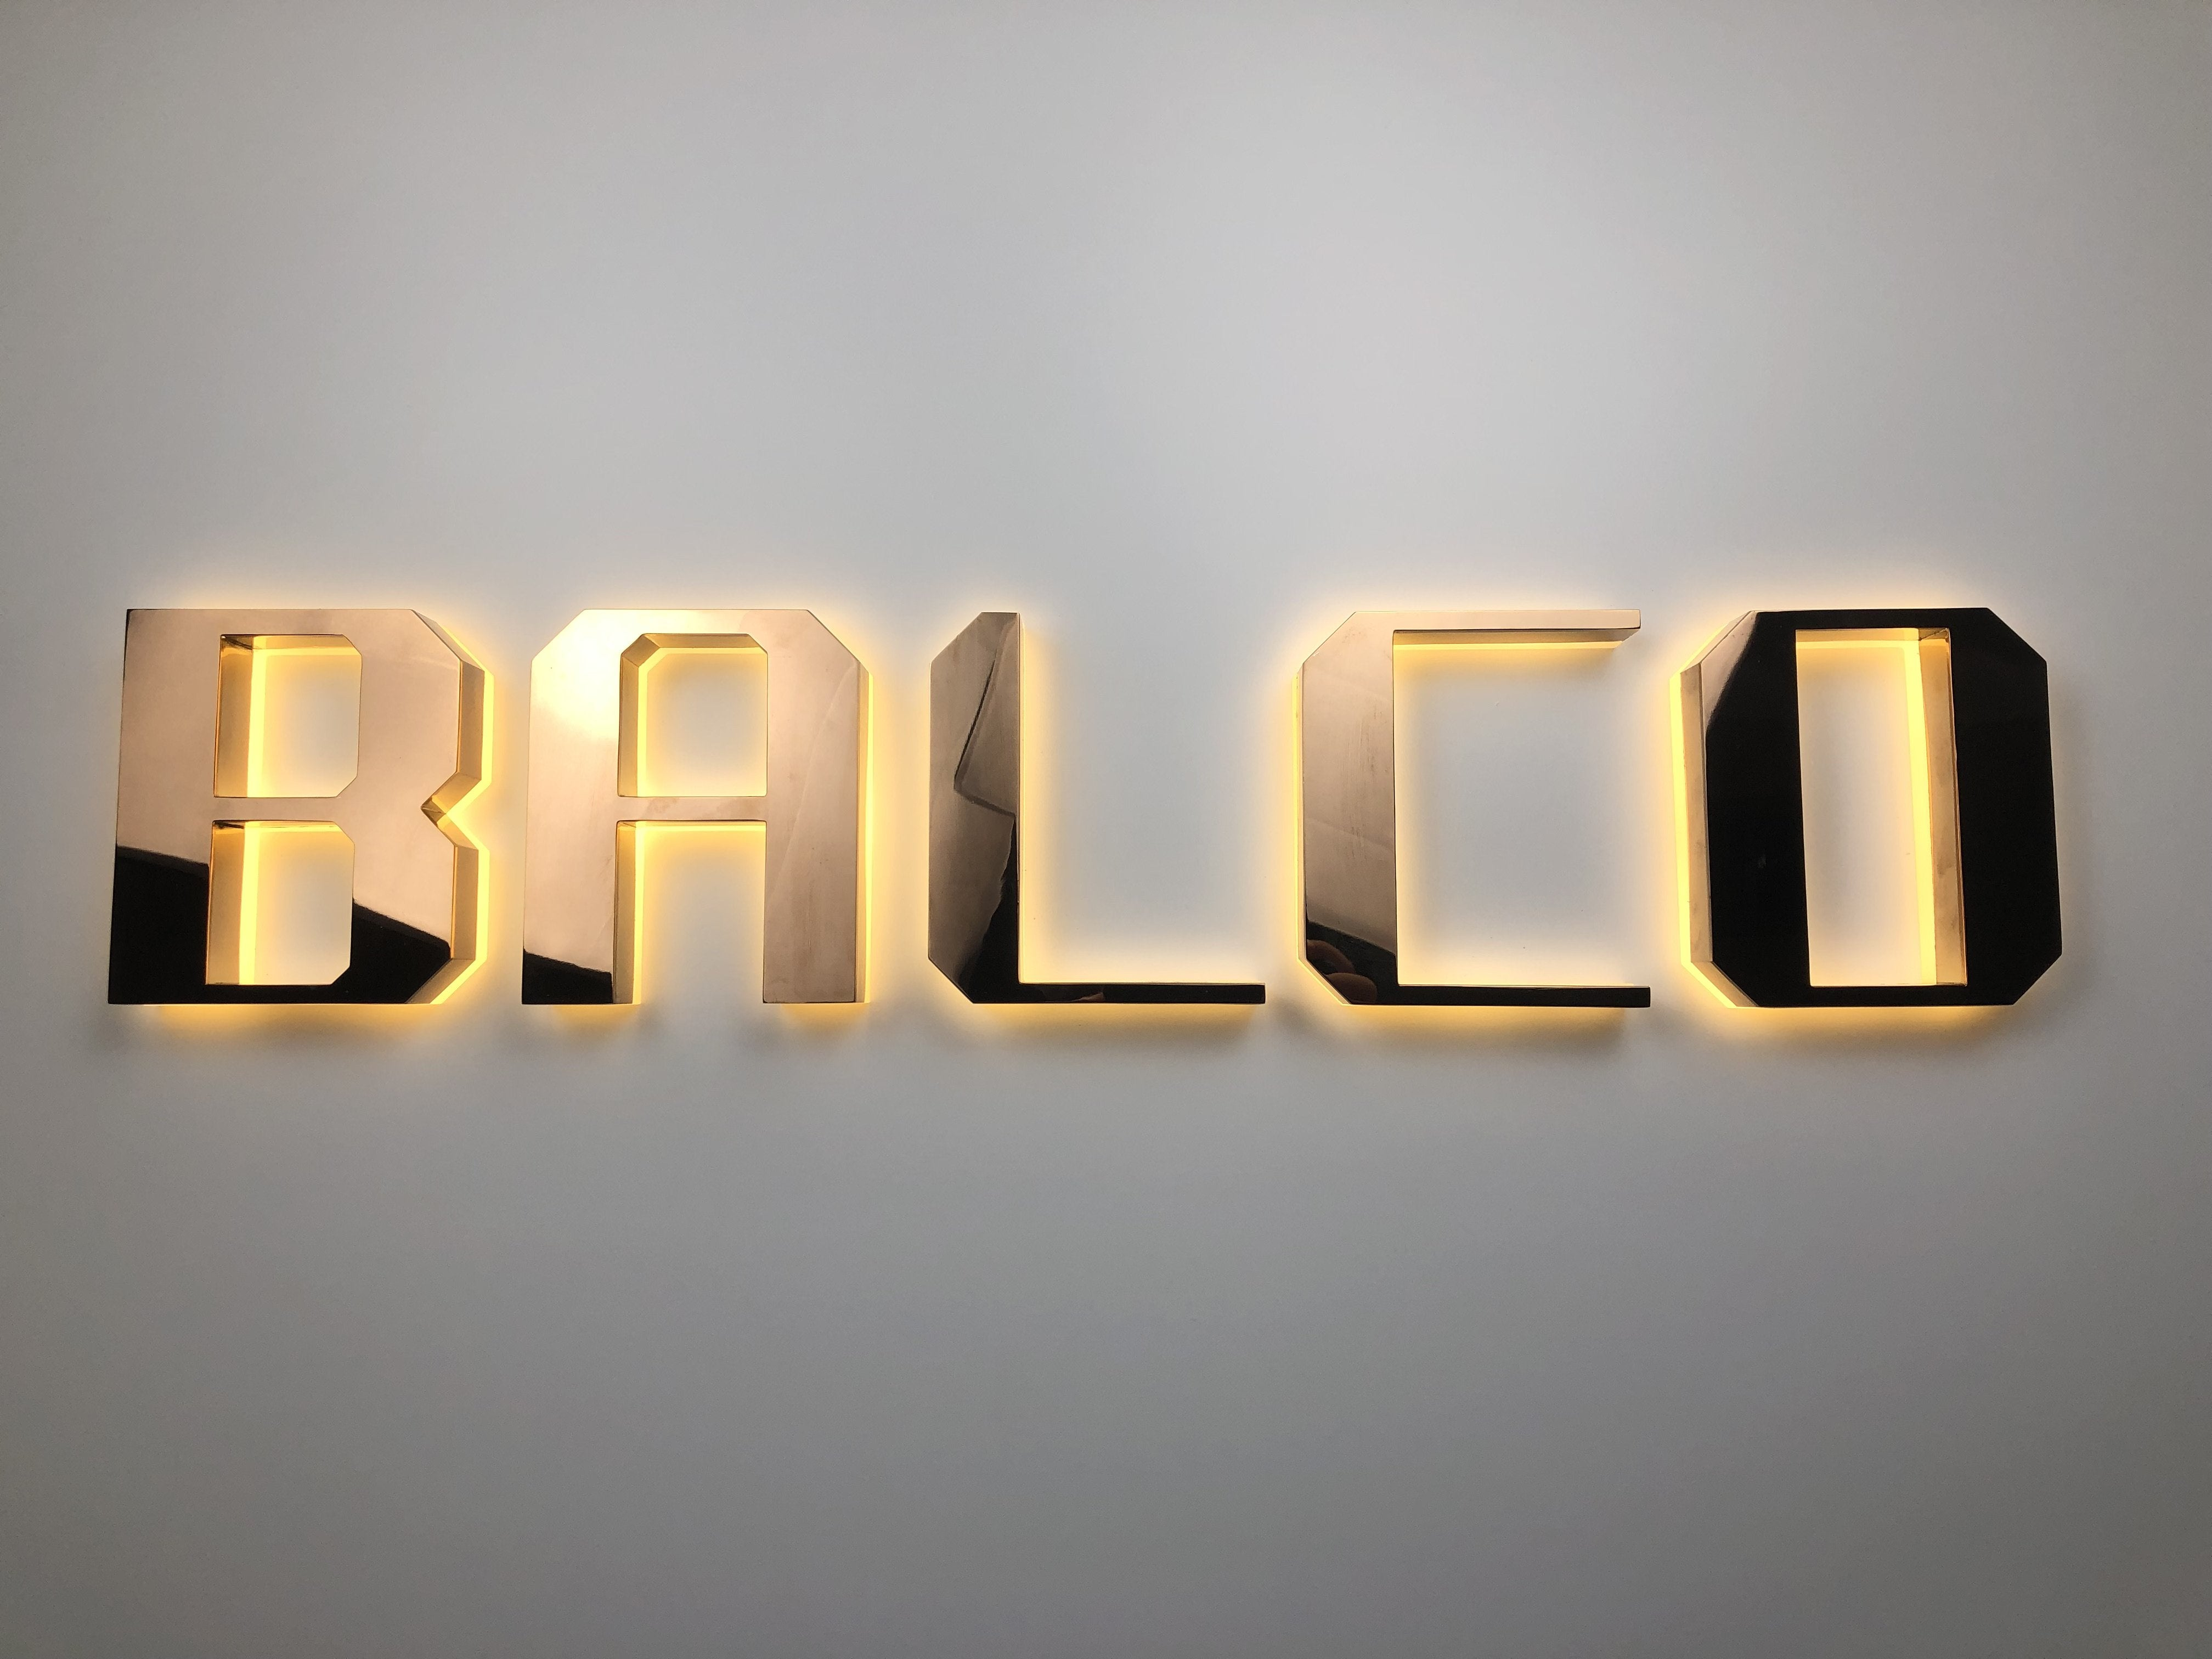 3D LED Letters (submit for quote)